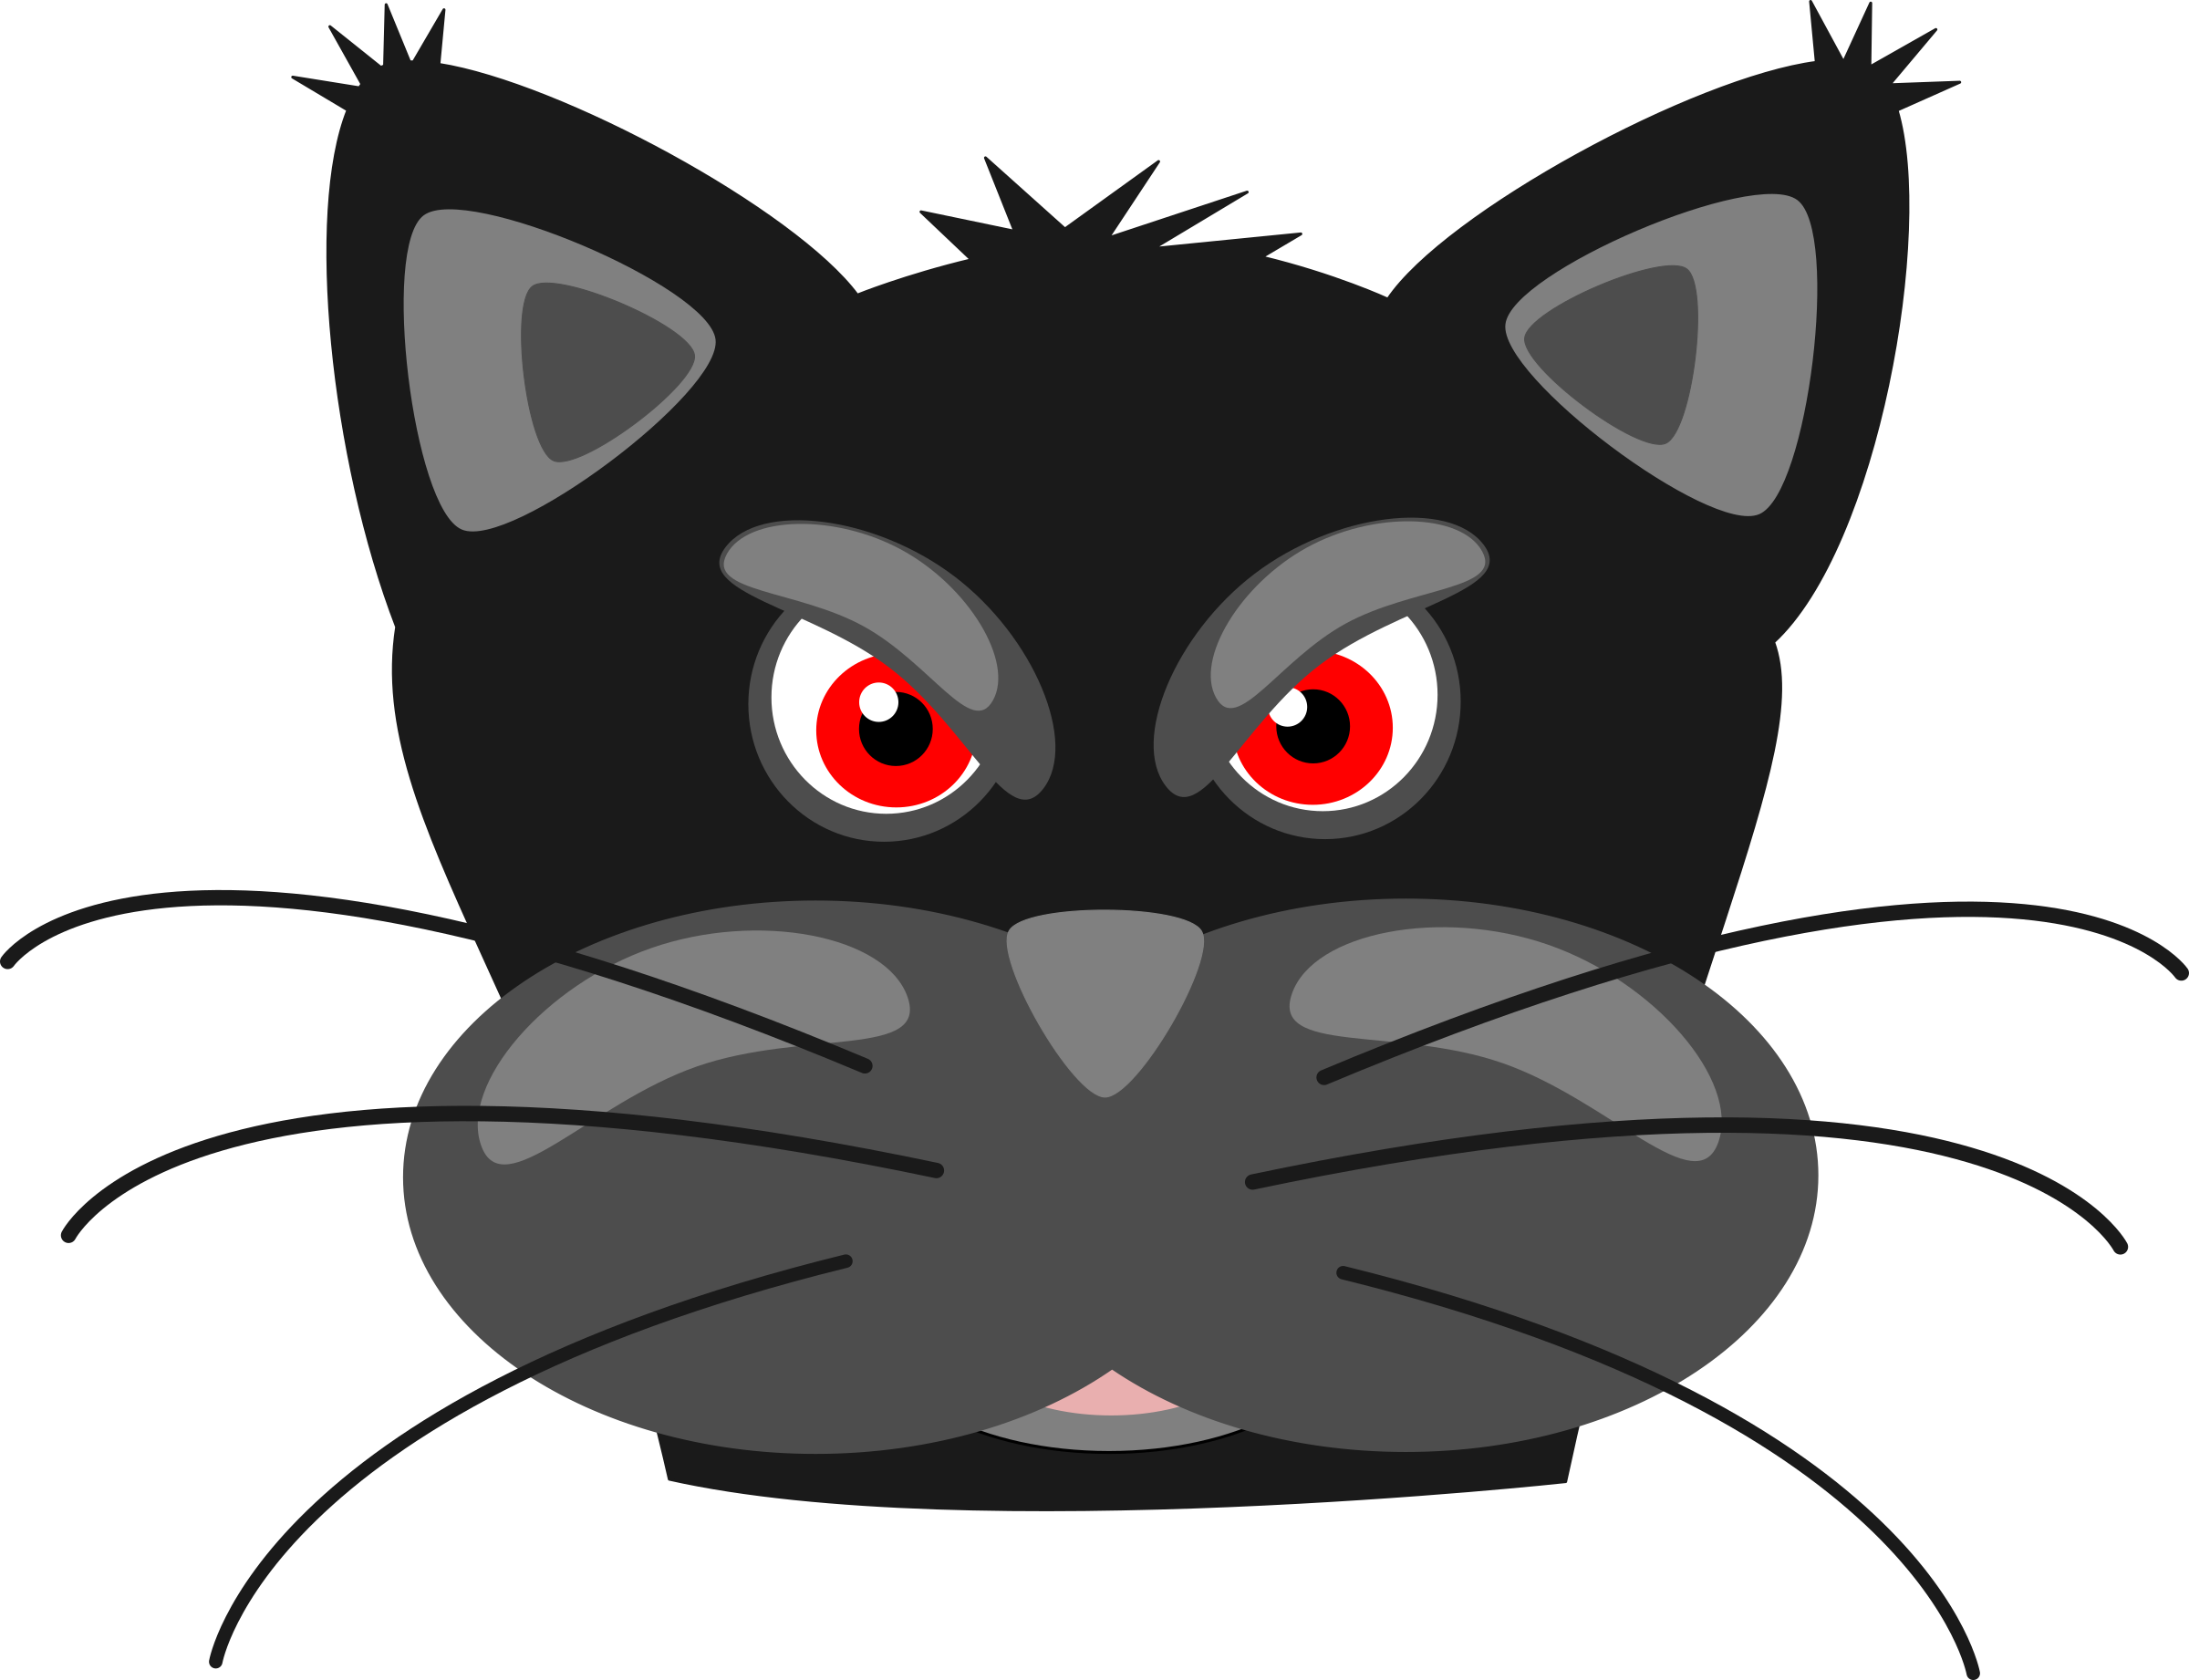 Panther clipart angry Black Angry Angry Clipart panther